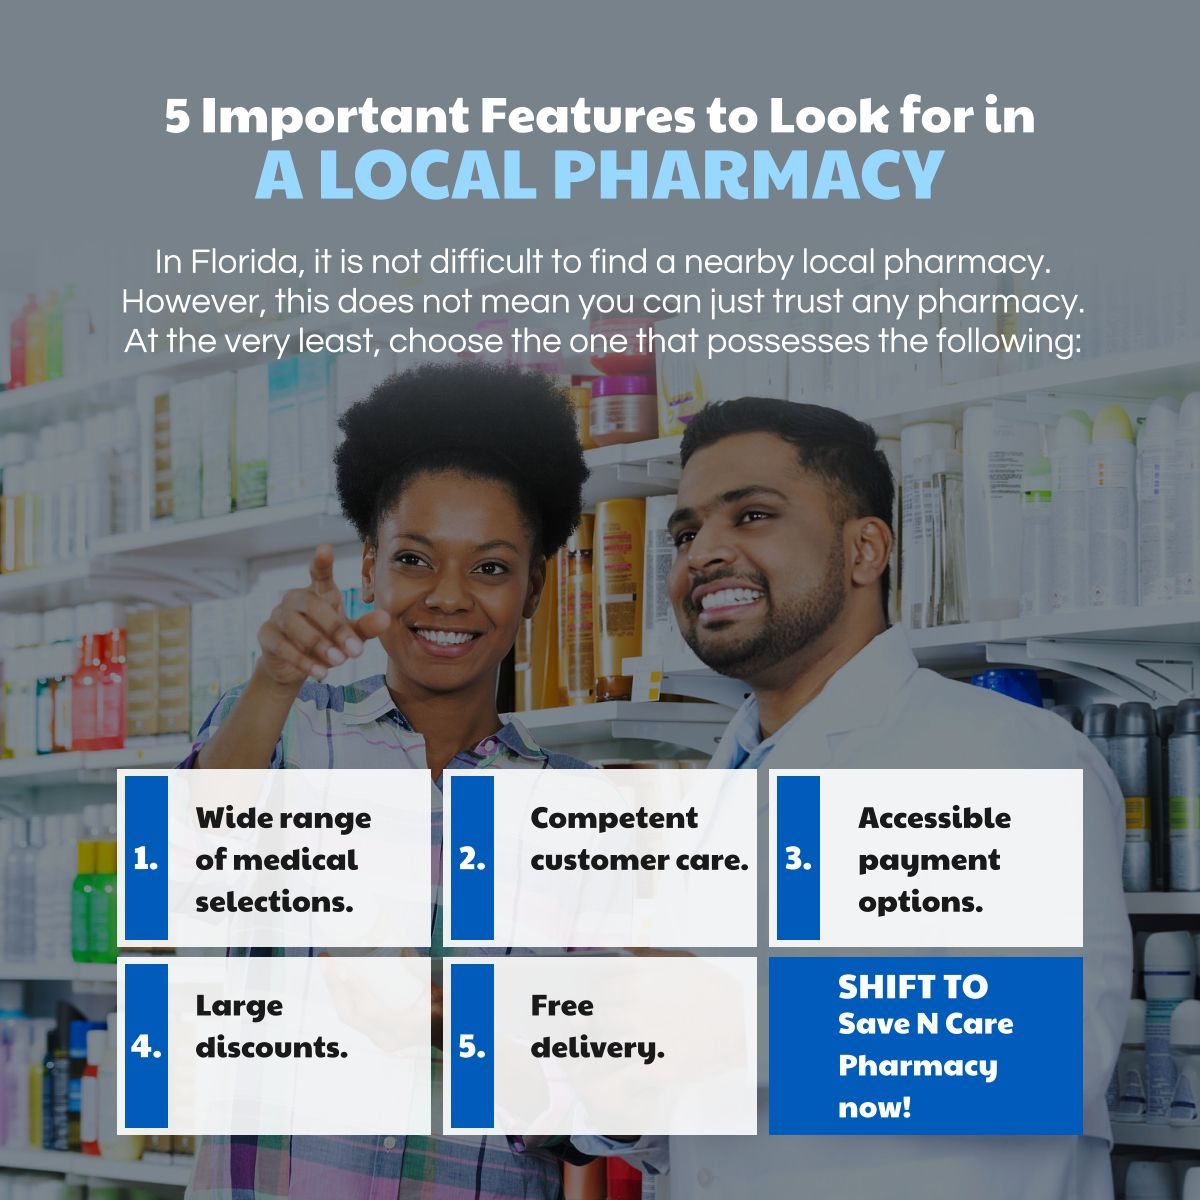 5 Important Features to Look for in a Local Pharmacy